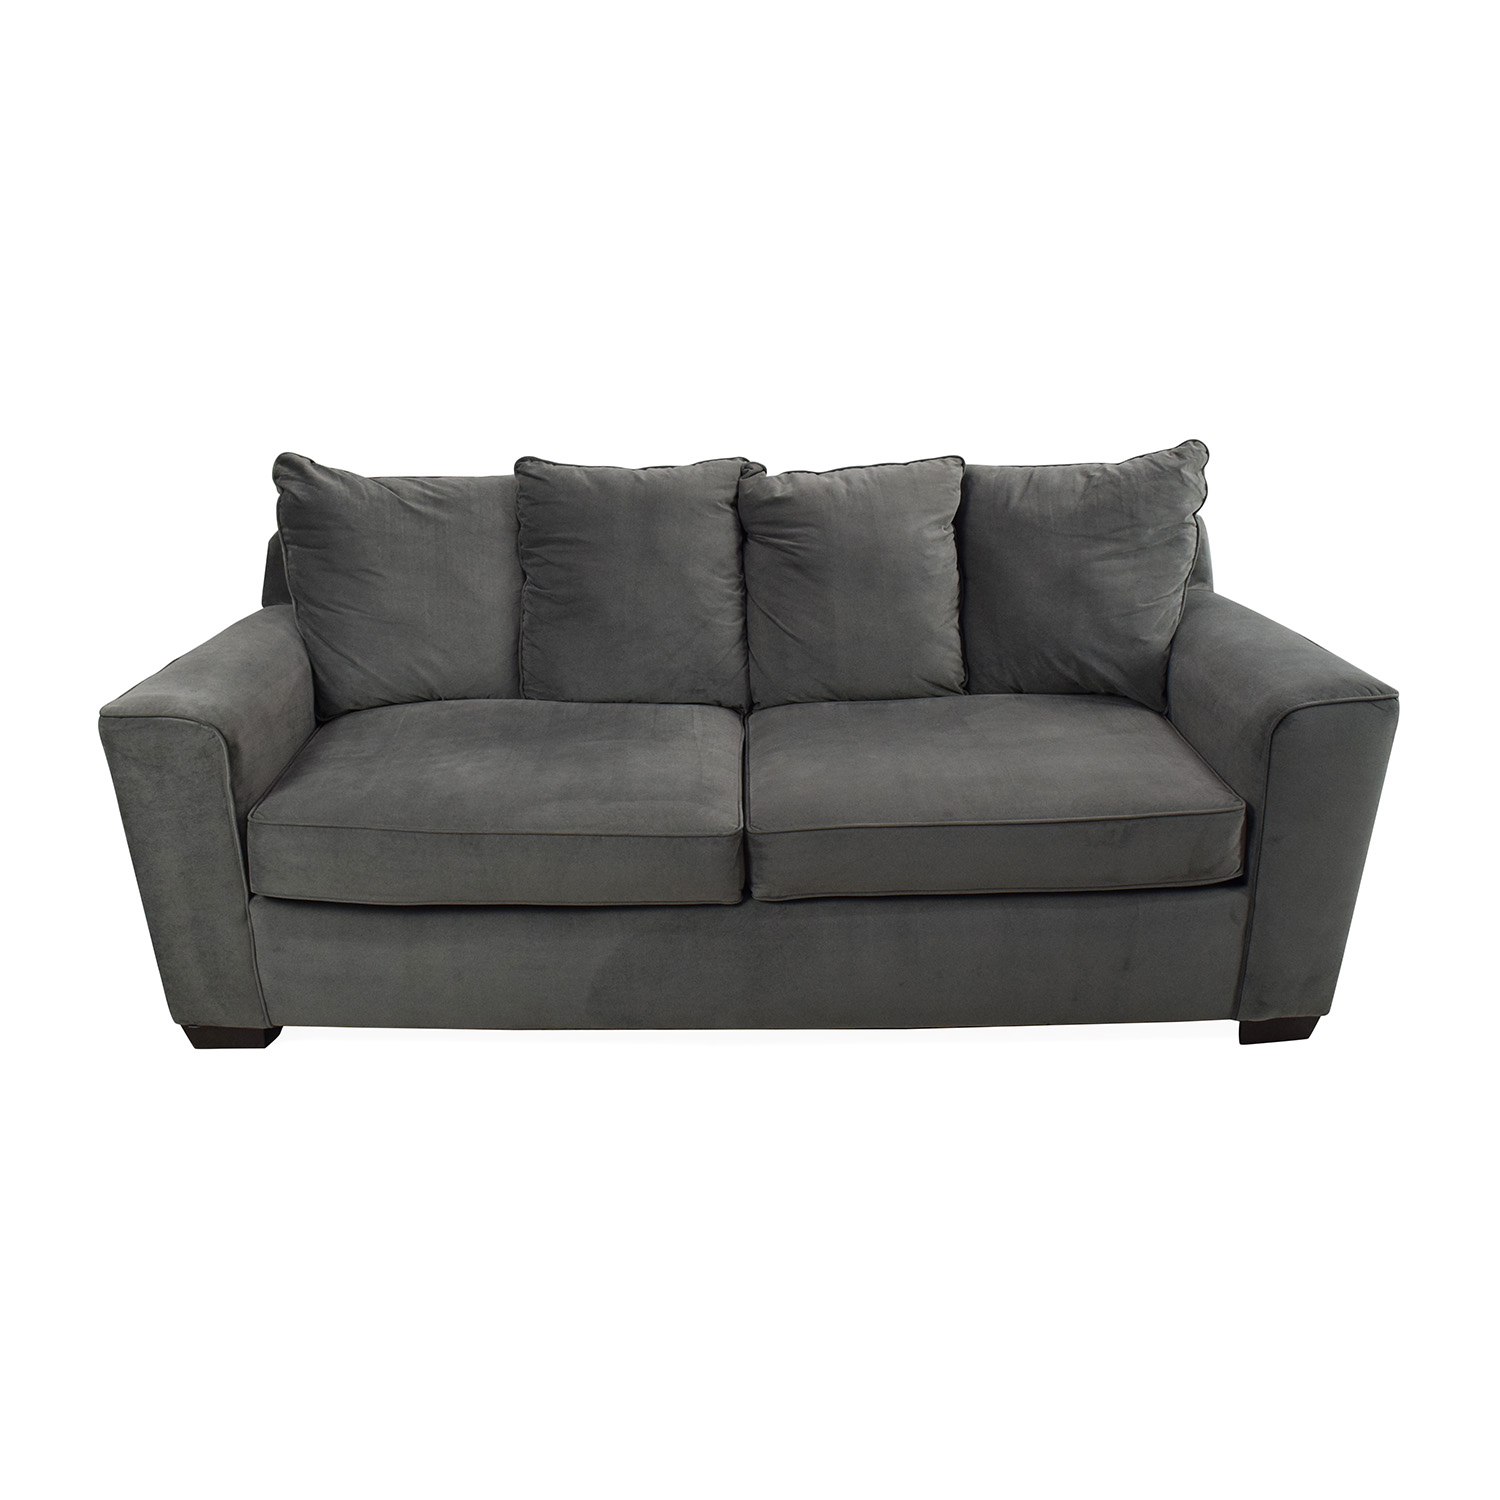 buy Jennifer Convertibles Plush Sofa Jennifer Convertibles Sofas